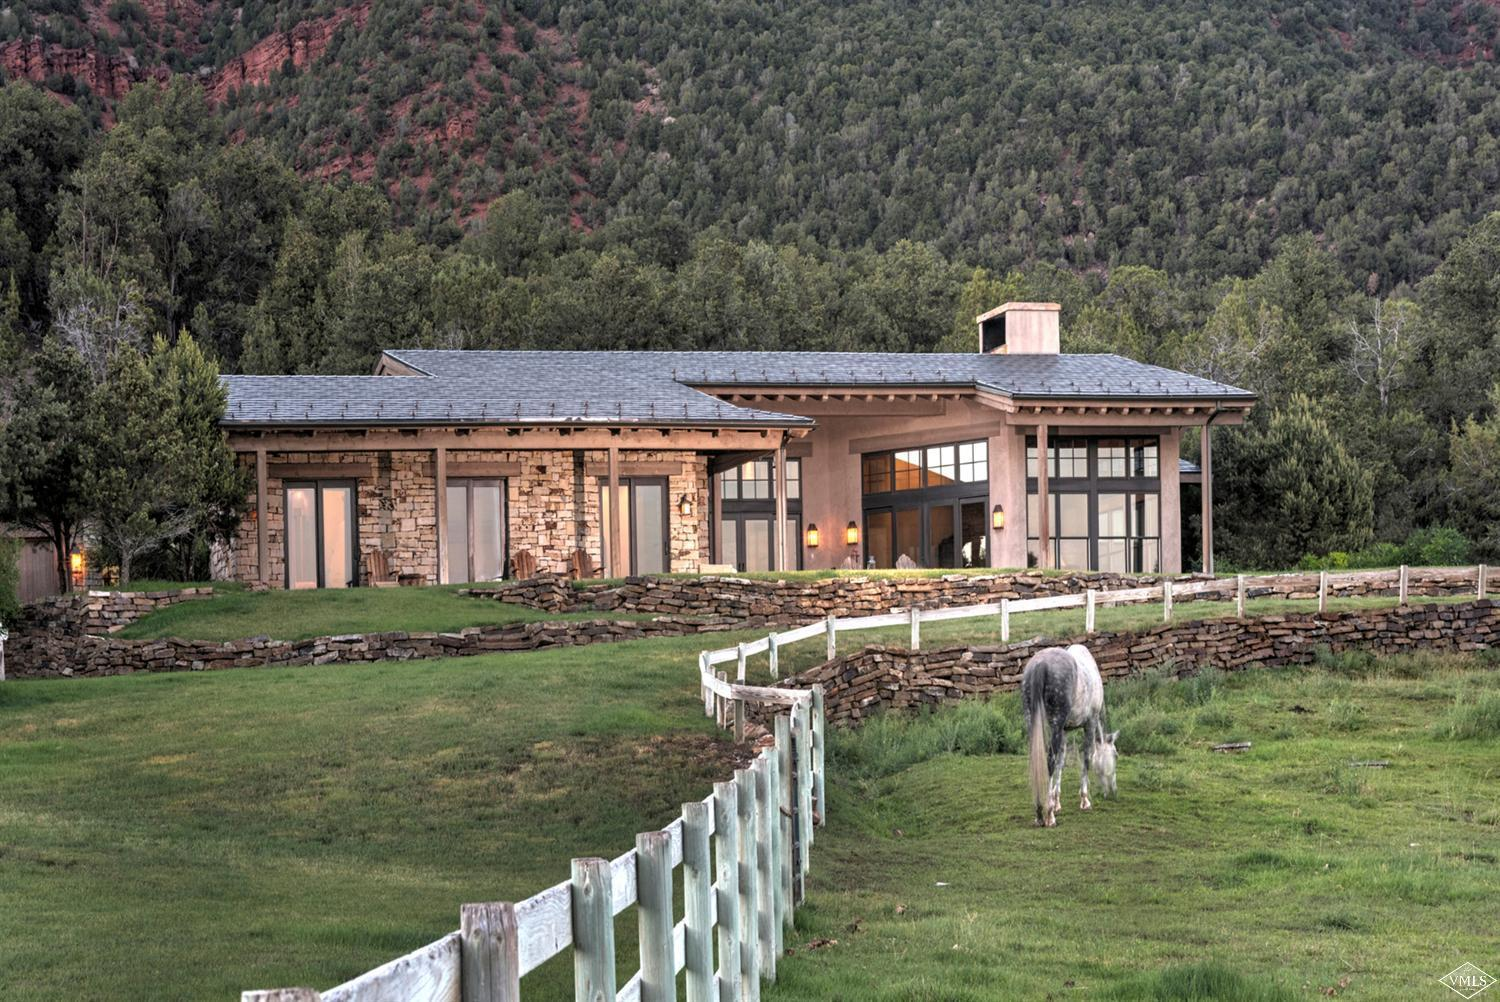 Gorgeous Colorado ranch with unobstructed mountain views, 37+ useable acres, ranch-style home with an incredible open concept floor plan. Vaulted ceiling, all bedrooms on main floor; 3-car heated garage, 4+ fenced pastures with all year heated water sources. Large barn with storage area and a plumbed area for caretaker unit and 4 indoor/outdoor stalls, truly one of the best horse properties in all of Eagle County.